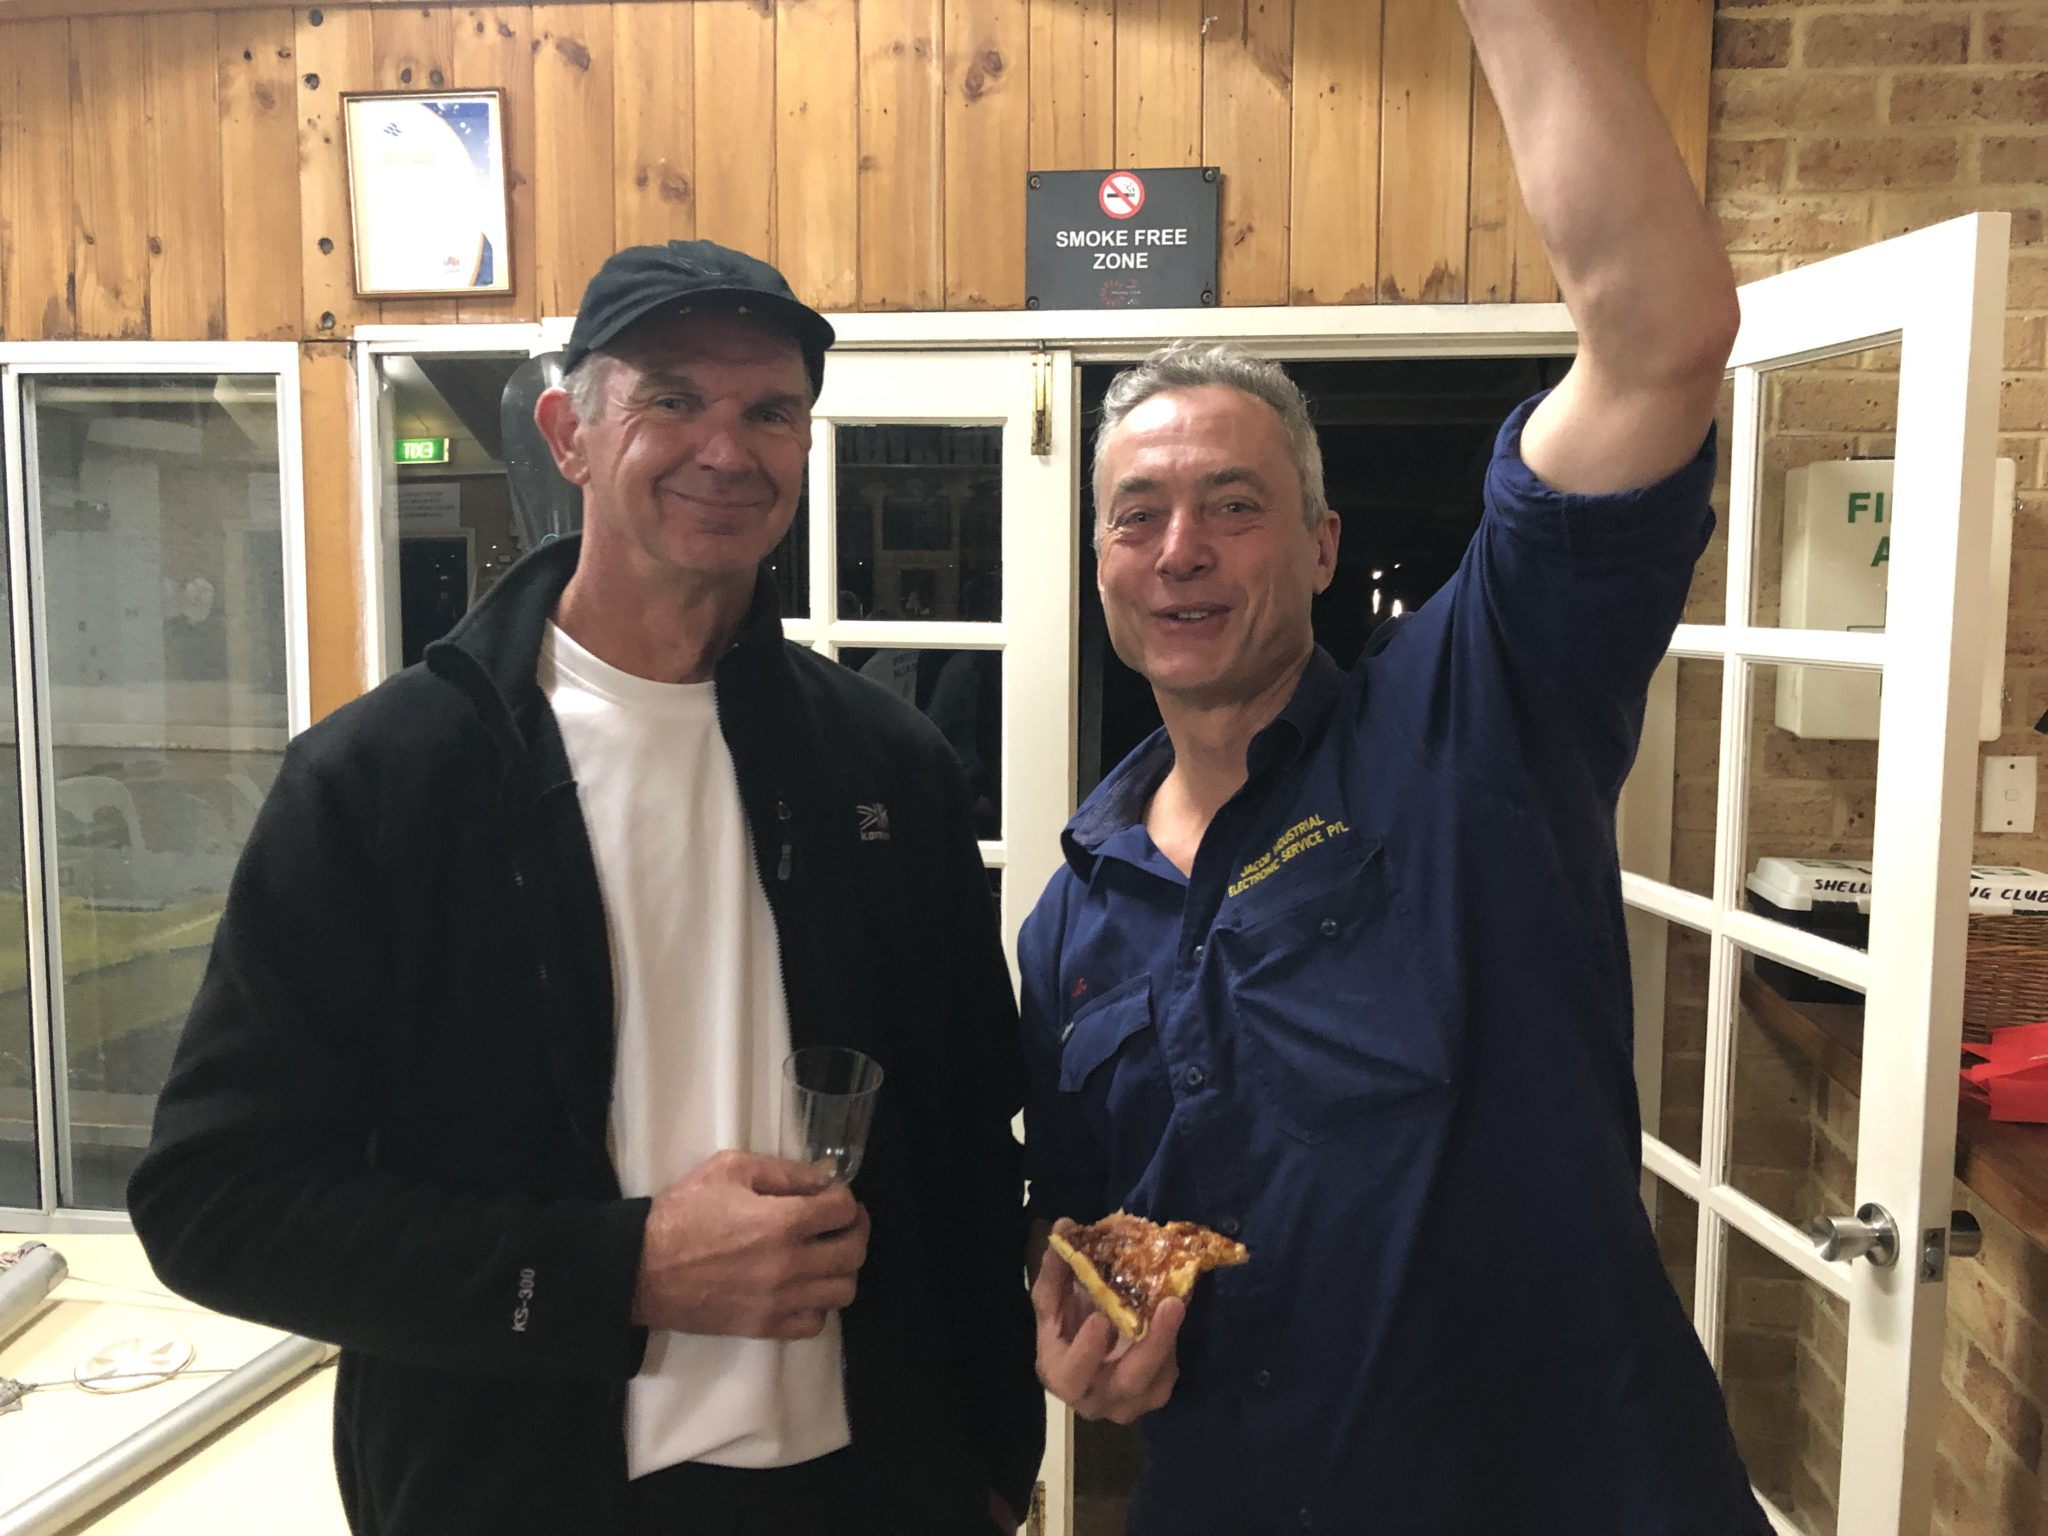 Tuesday 2nd July 2019 : Tonight's photo shows club member Luc Jacob presenting Dave MaCauley with the winners movie voucher.